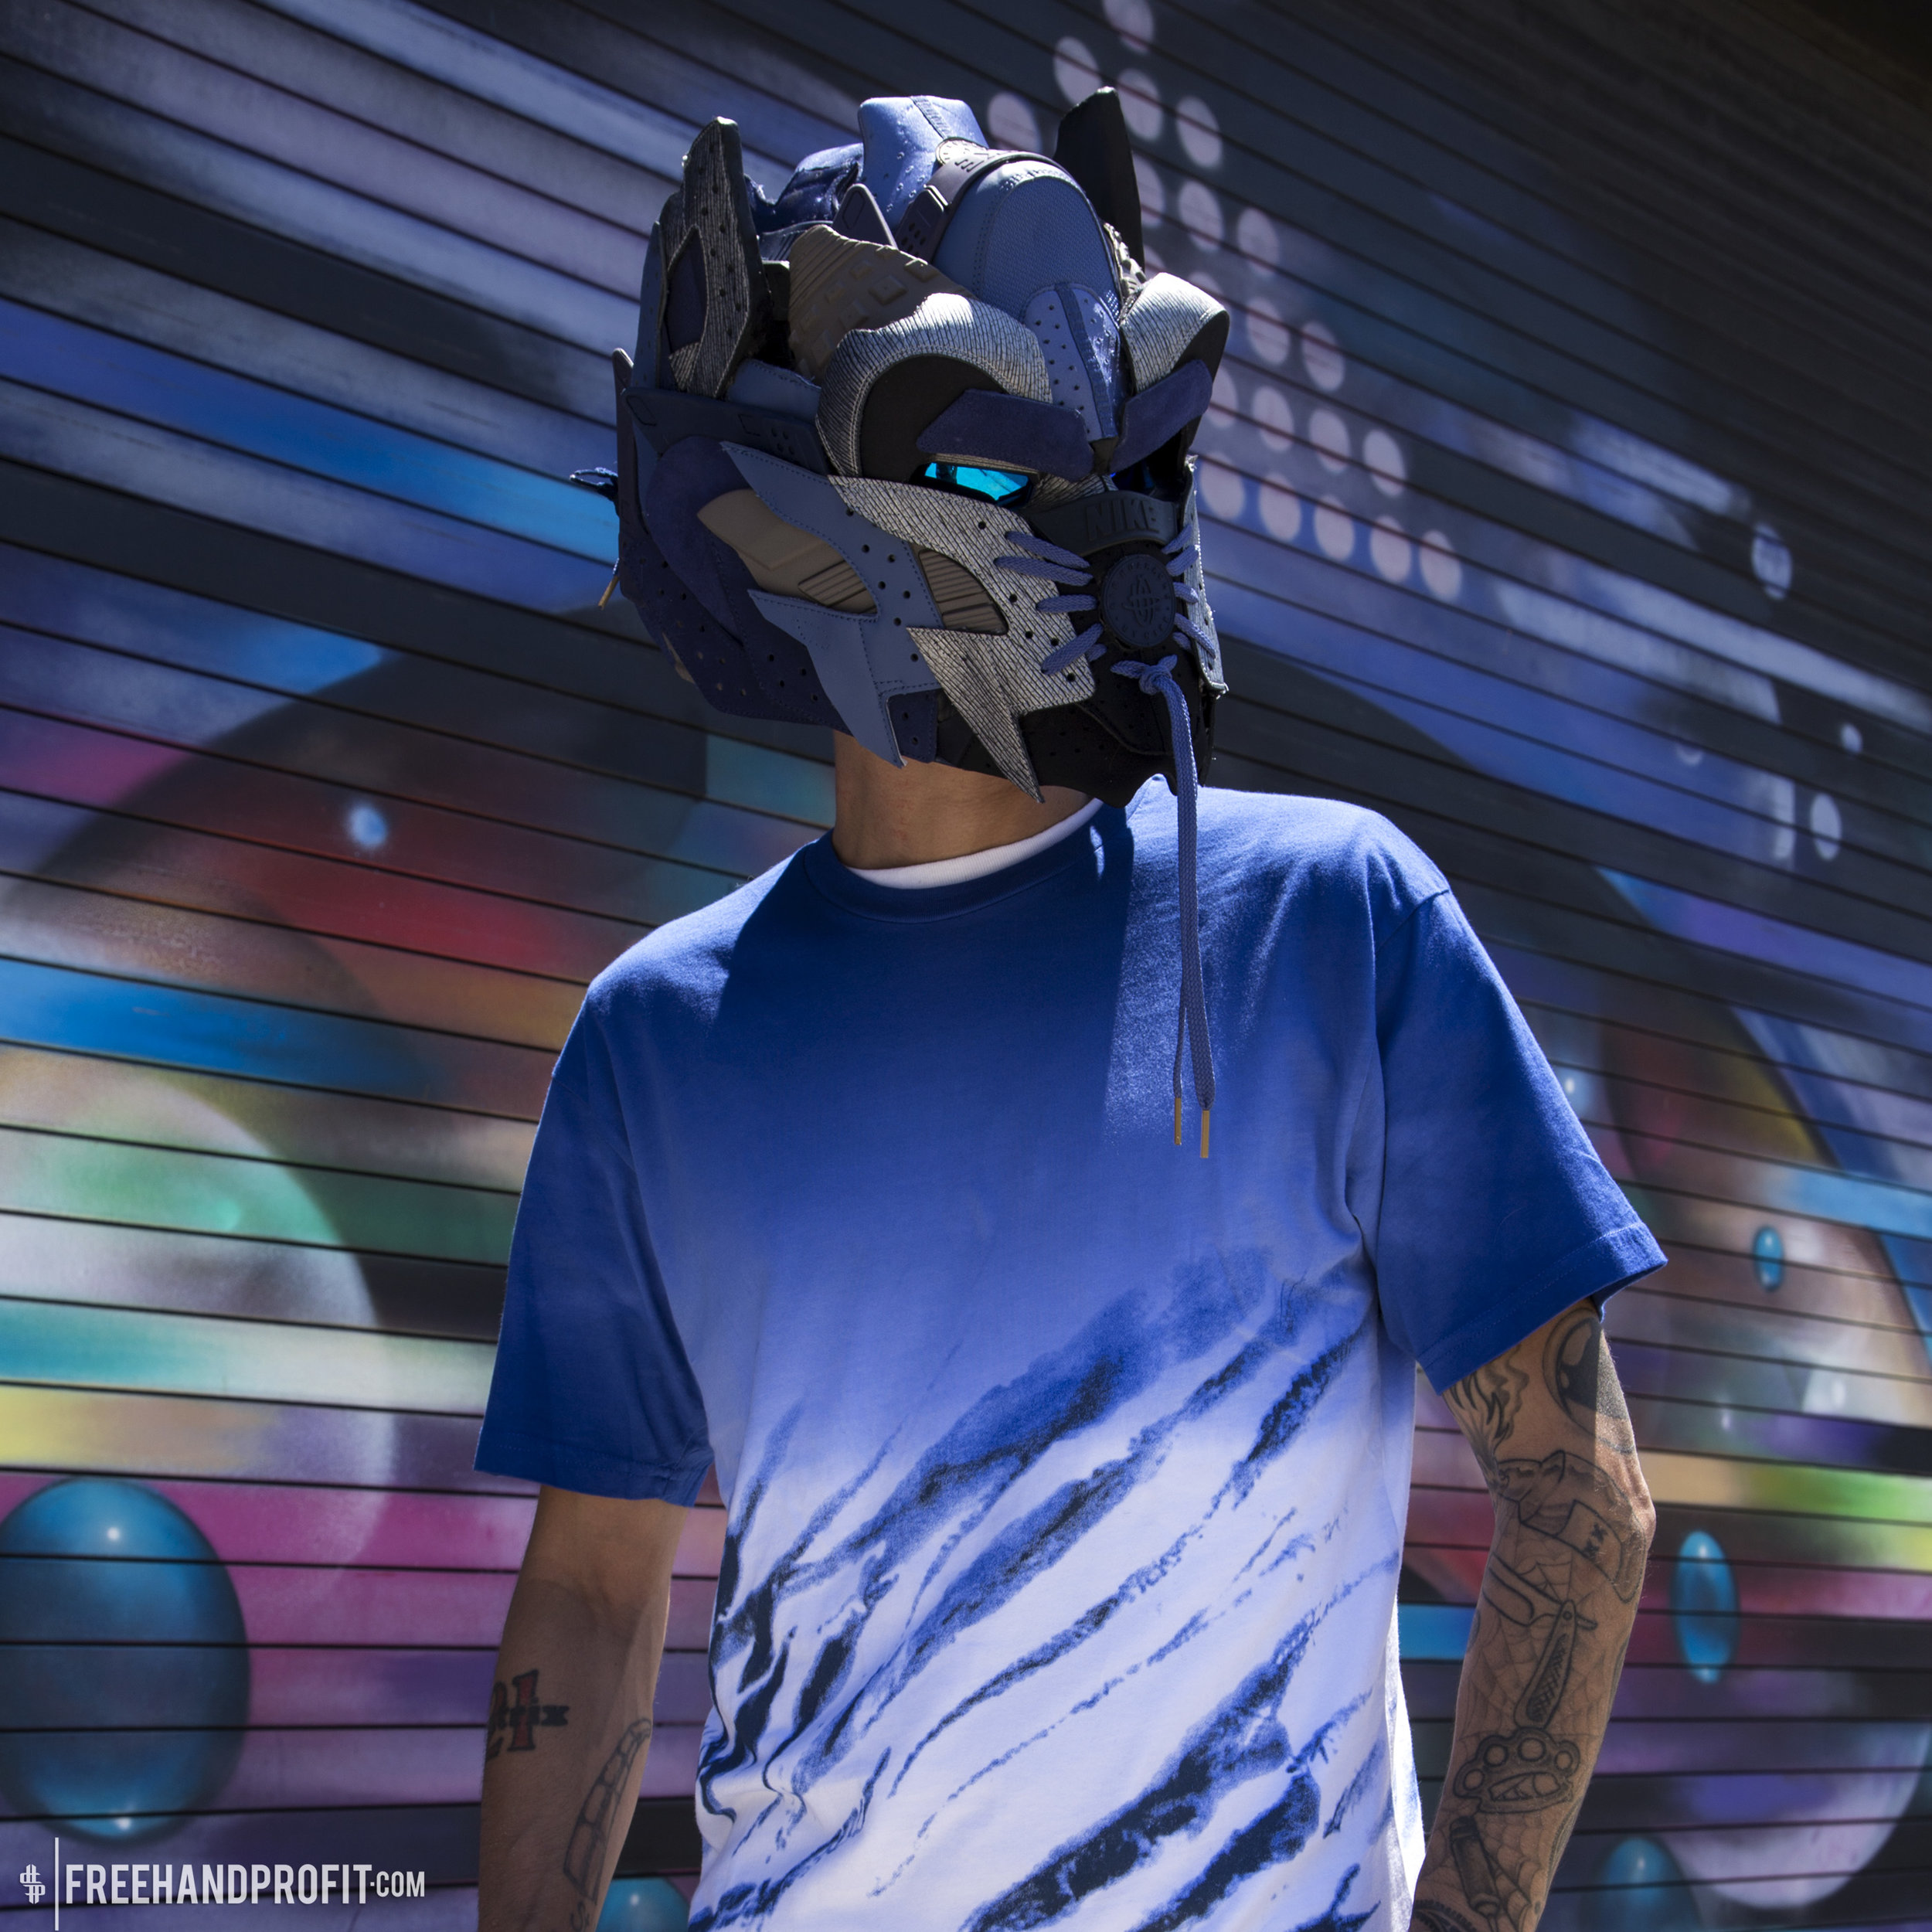 NEW SNEAKER MASK   Check out the 148th sneaker mask by Freehand Profit, an Optimus Prime helmet made from Nike Air Huaraches!